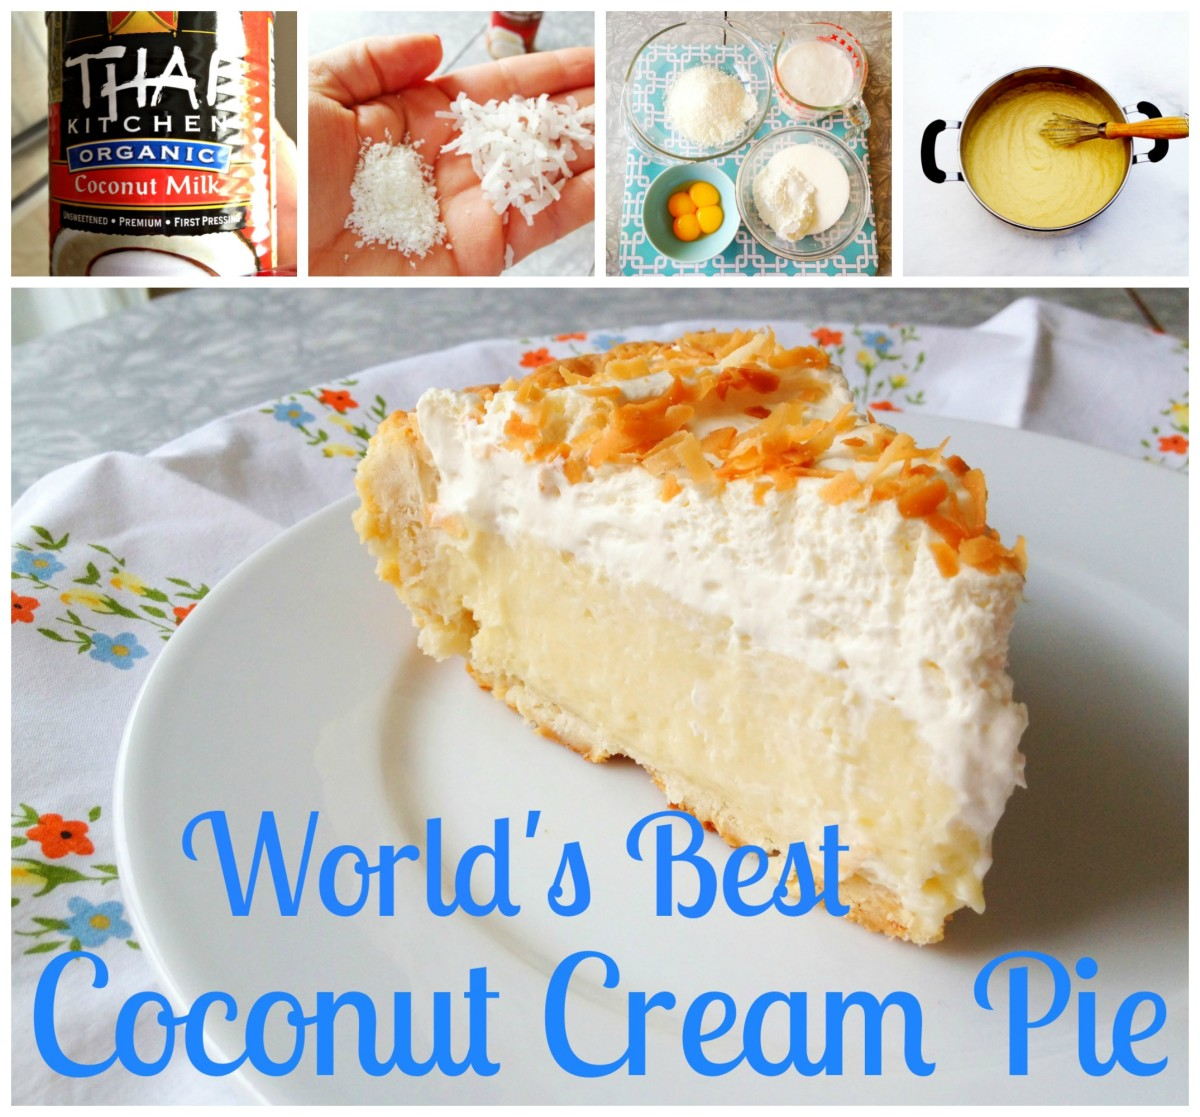 World's Best Coconut Cream Pie